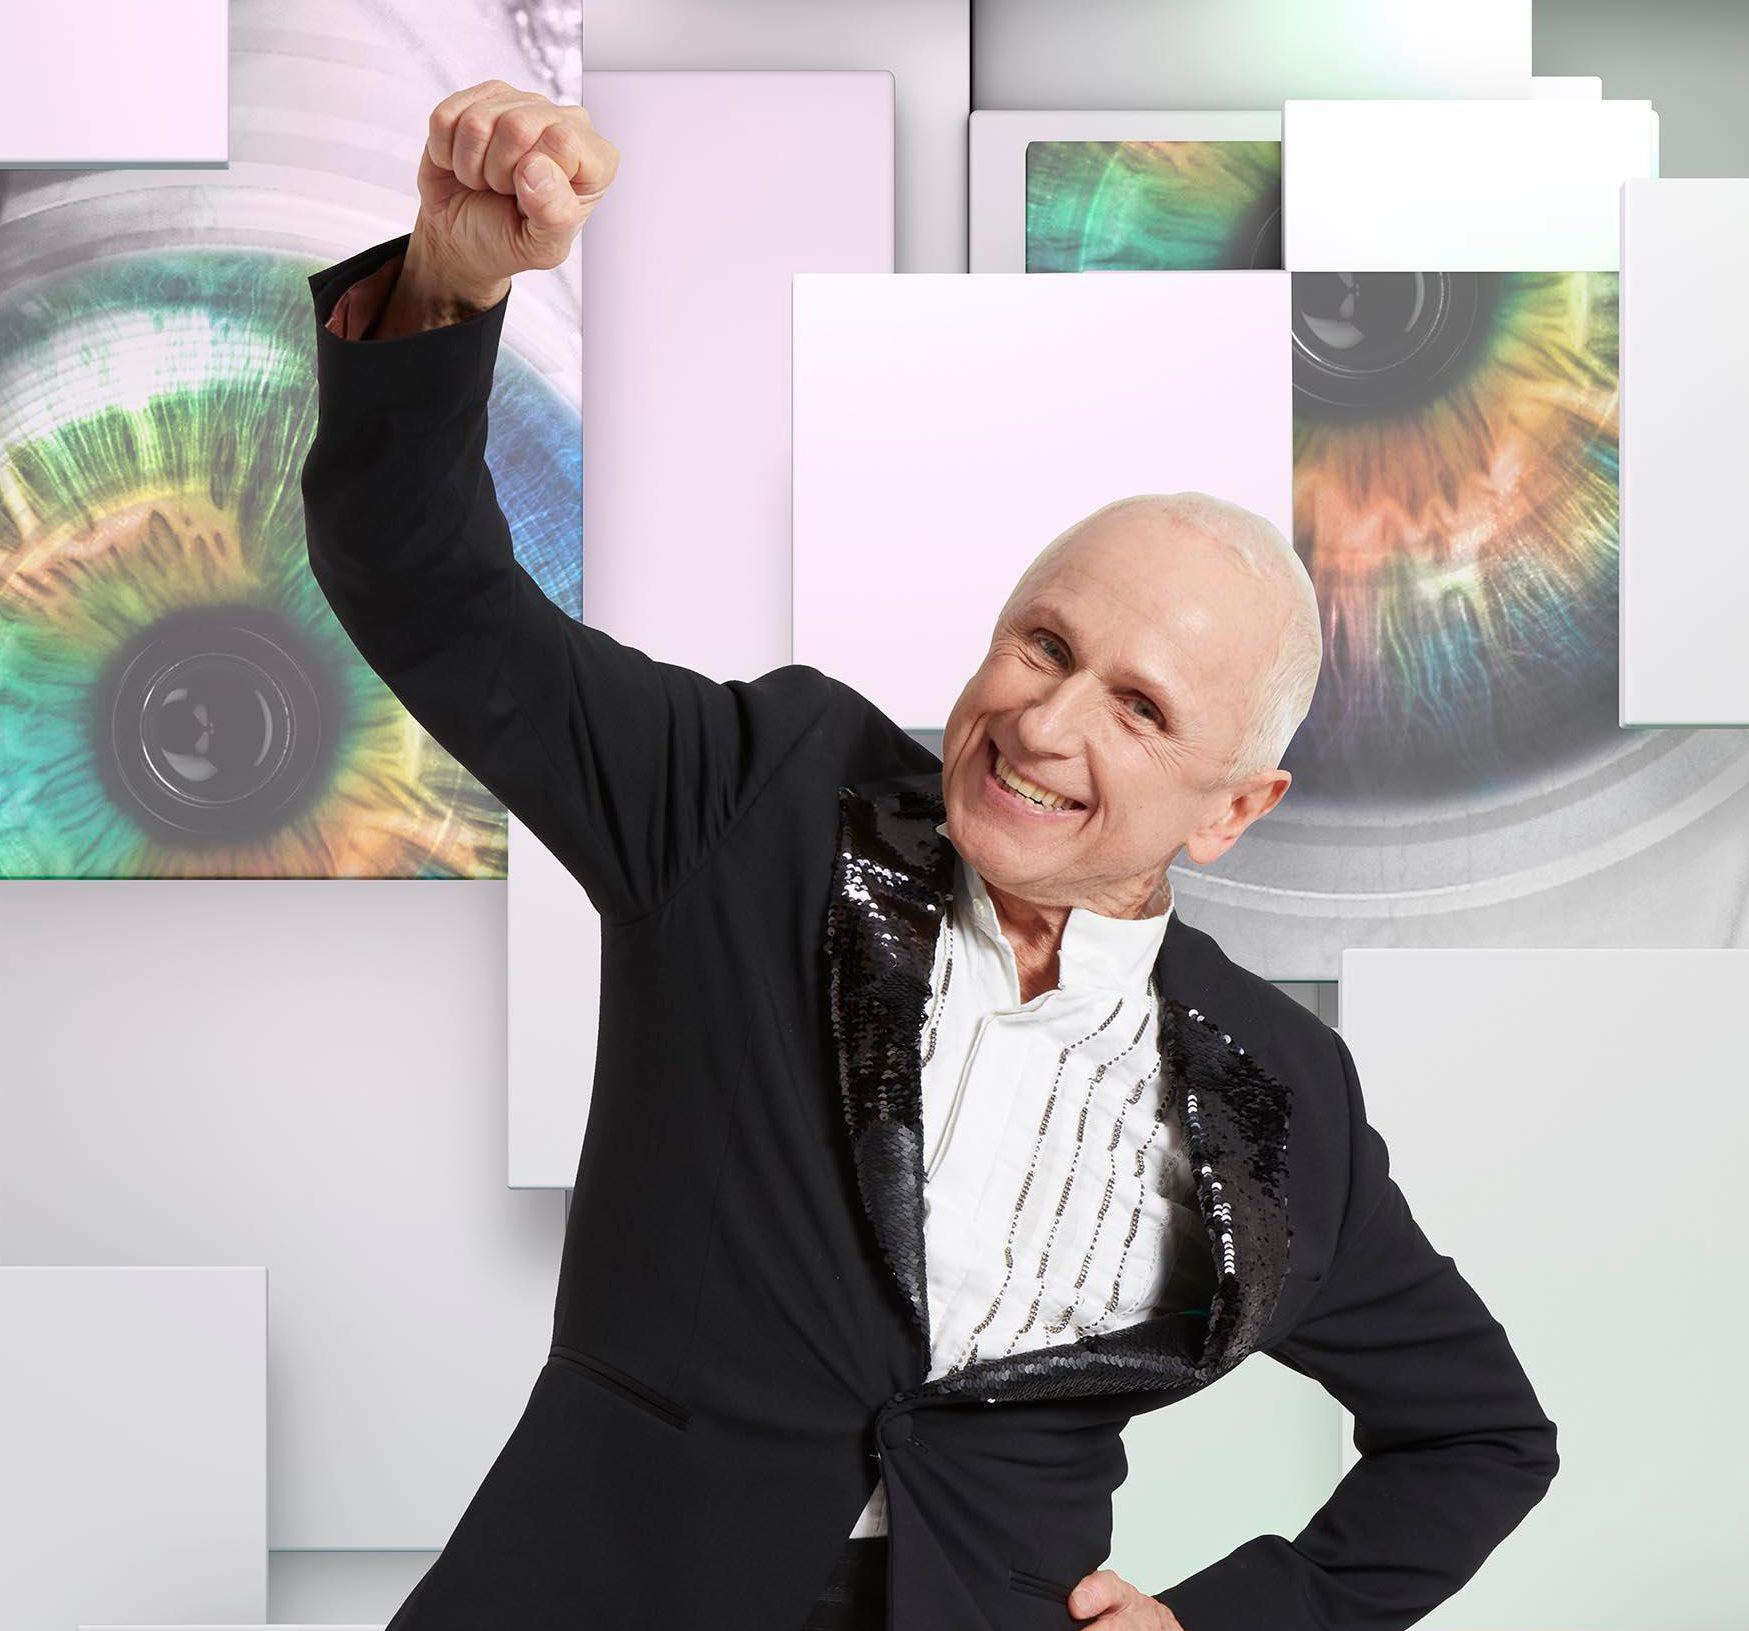 Who is Wayne Sleep? Celebrity Big Brother 2018 star who competed in I'm A Celebrity